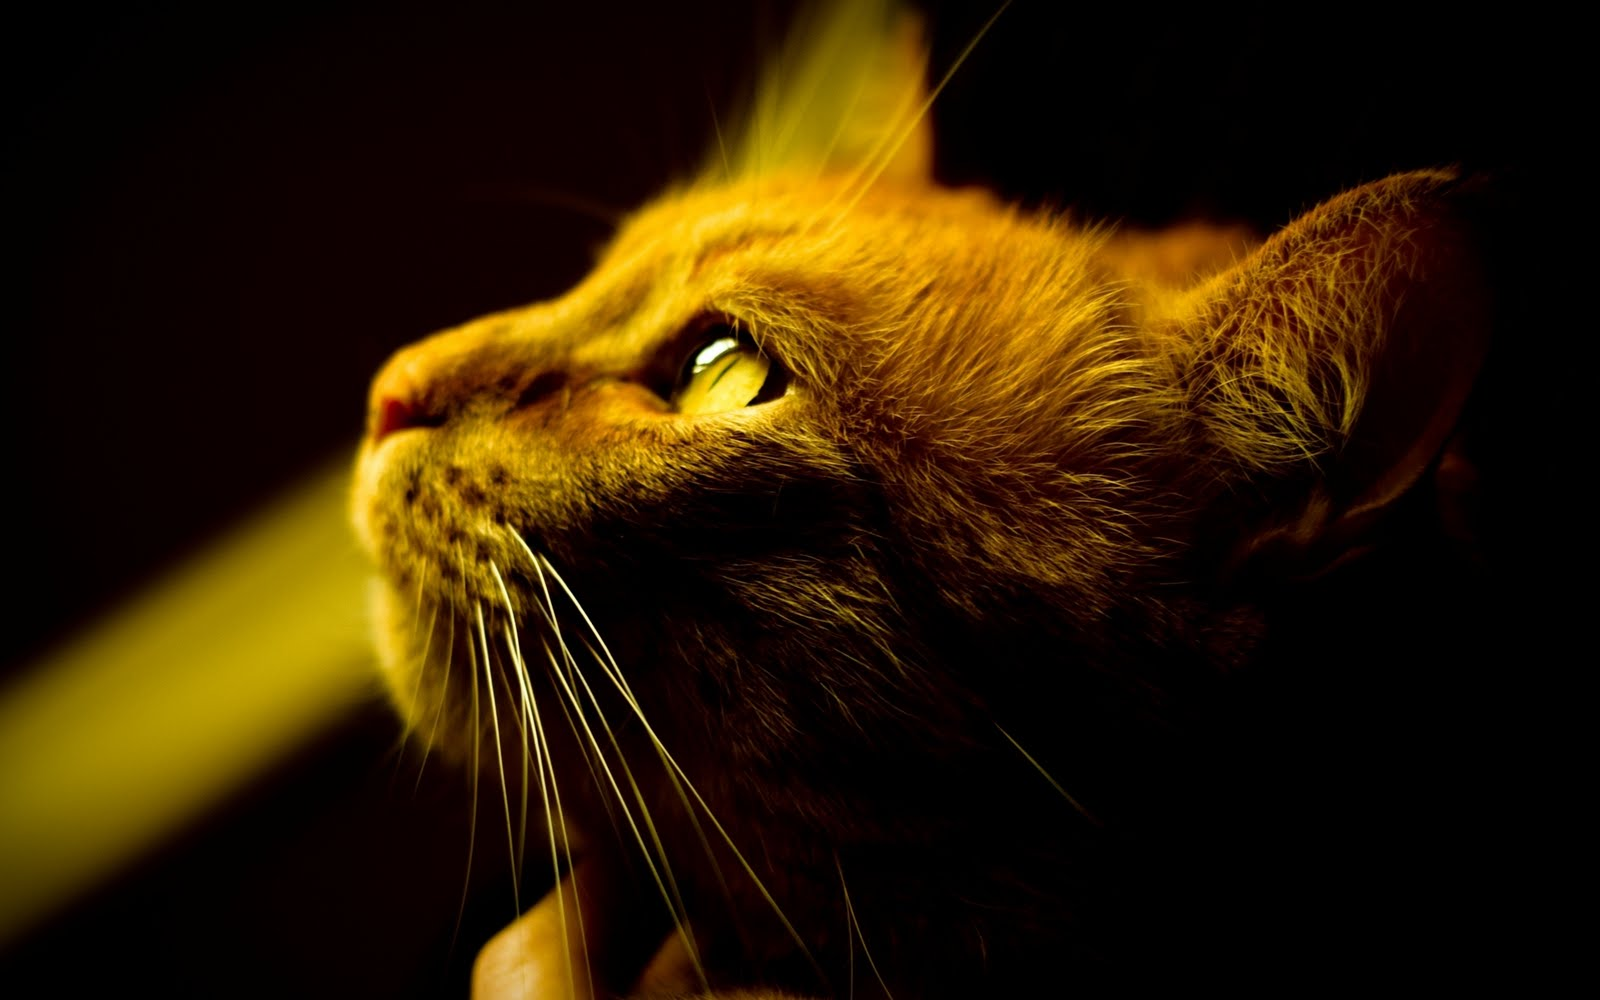 cat in the light cool eye 1080p hd wallpaper is a great wallpaper for 1600x1000